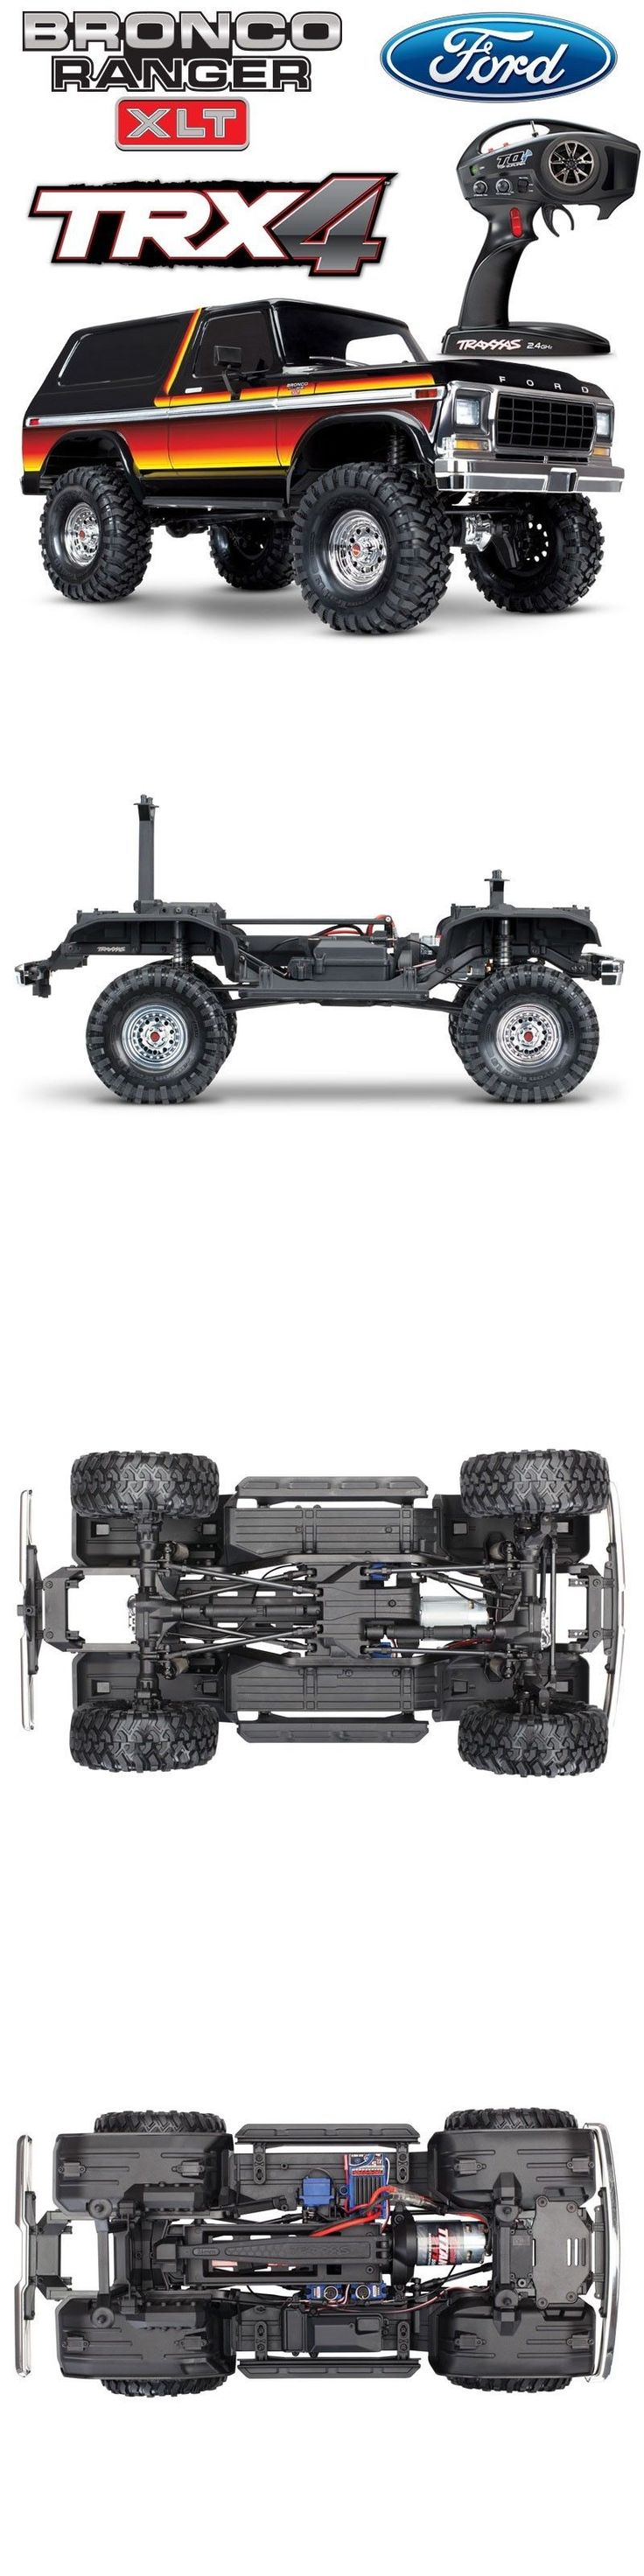 Details about NEW Traxxas TRX4 Ford Bronco Trail RC 4x4